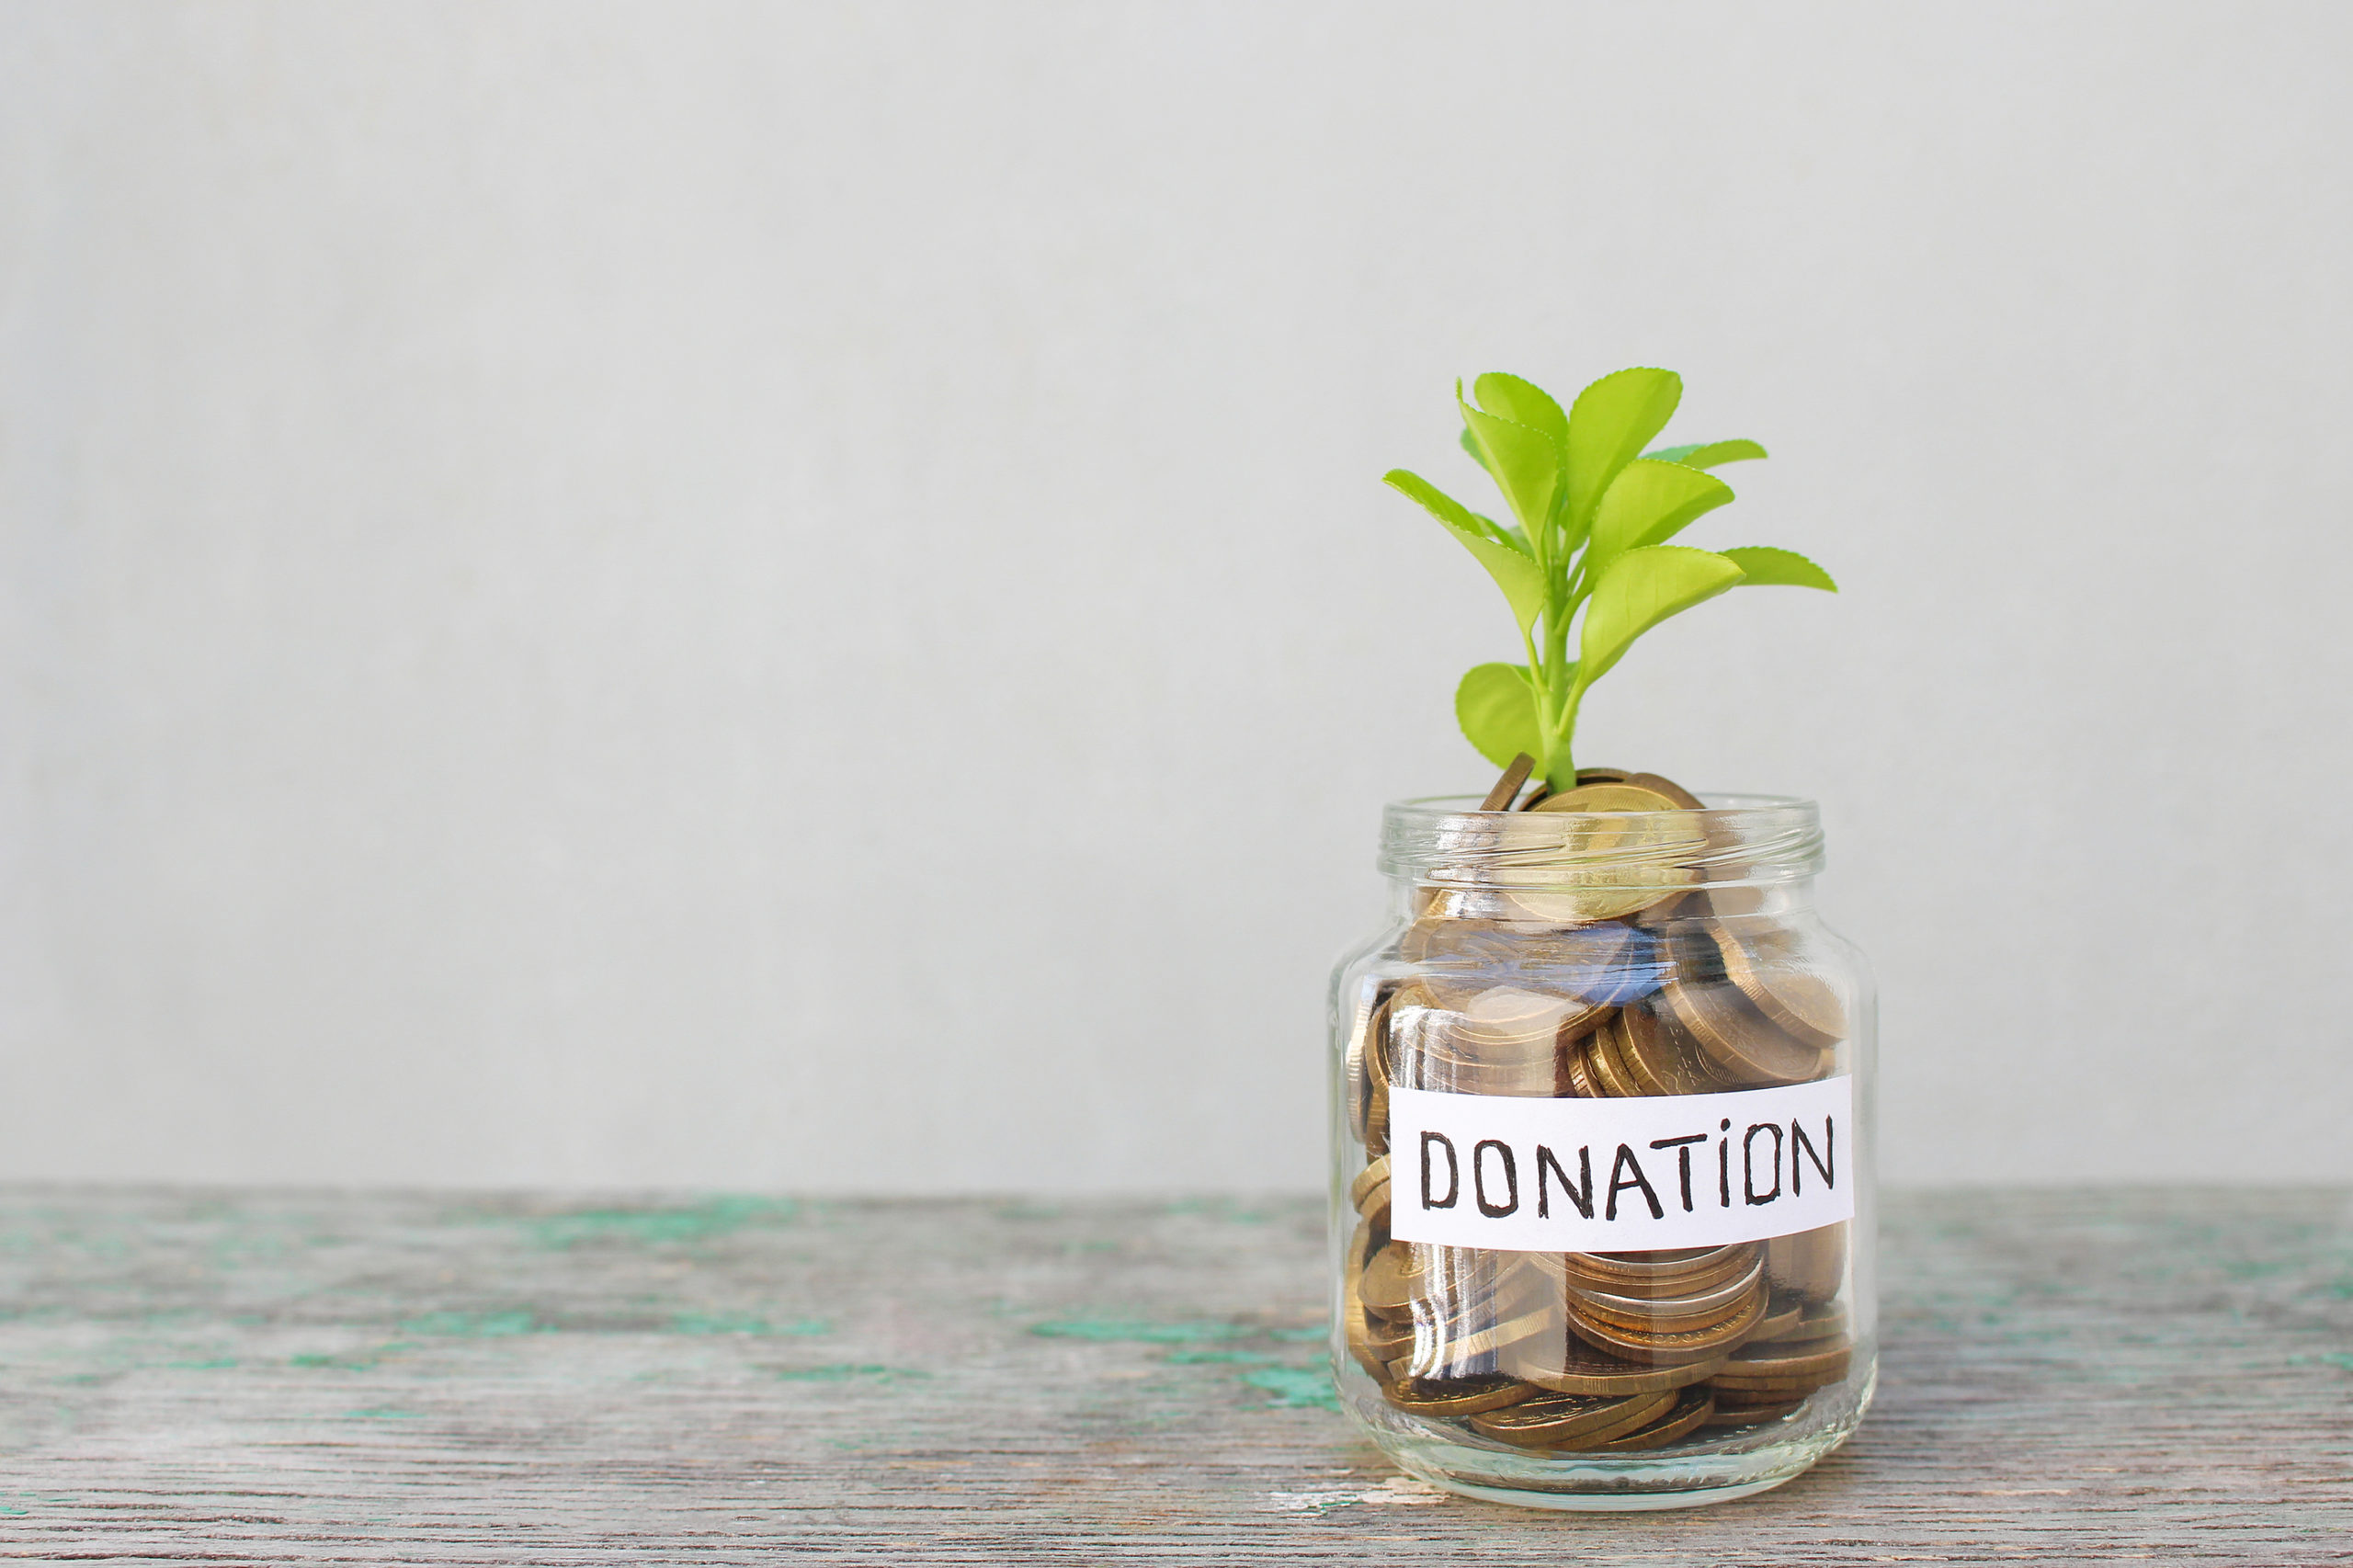 Plant growing in donation jar